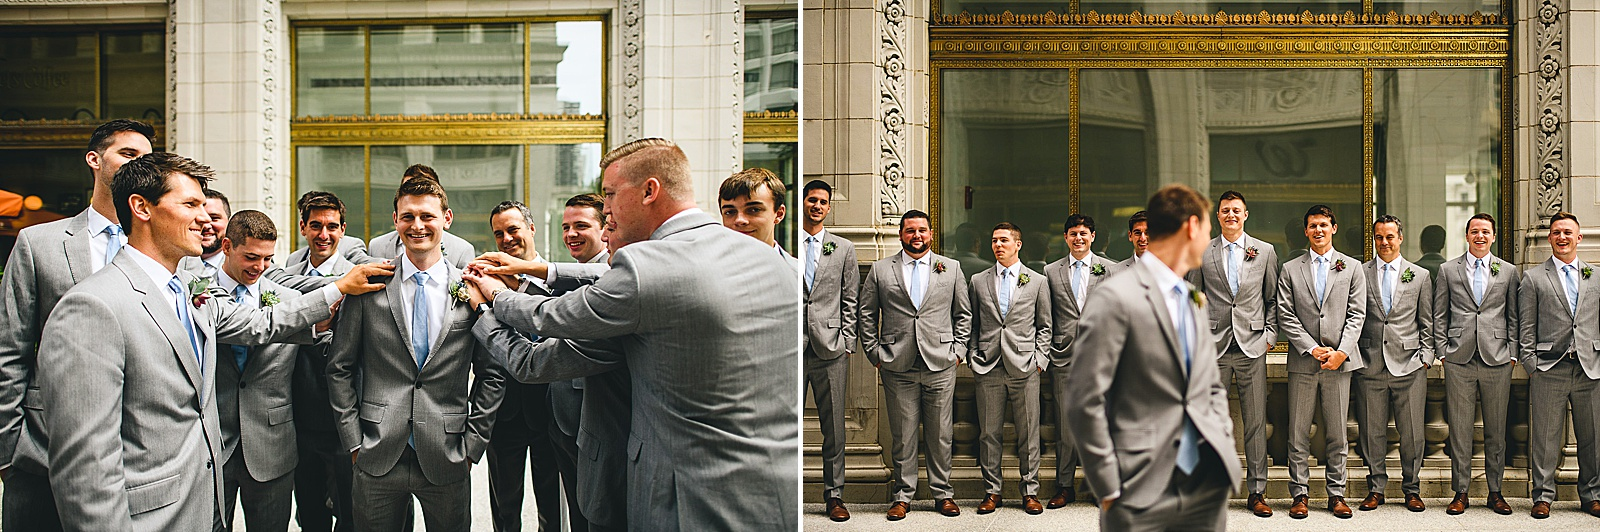 24 groomsmen - Audrey + Jake's Beautiful Chicago Wedding at Chez